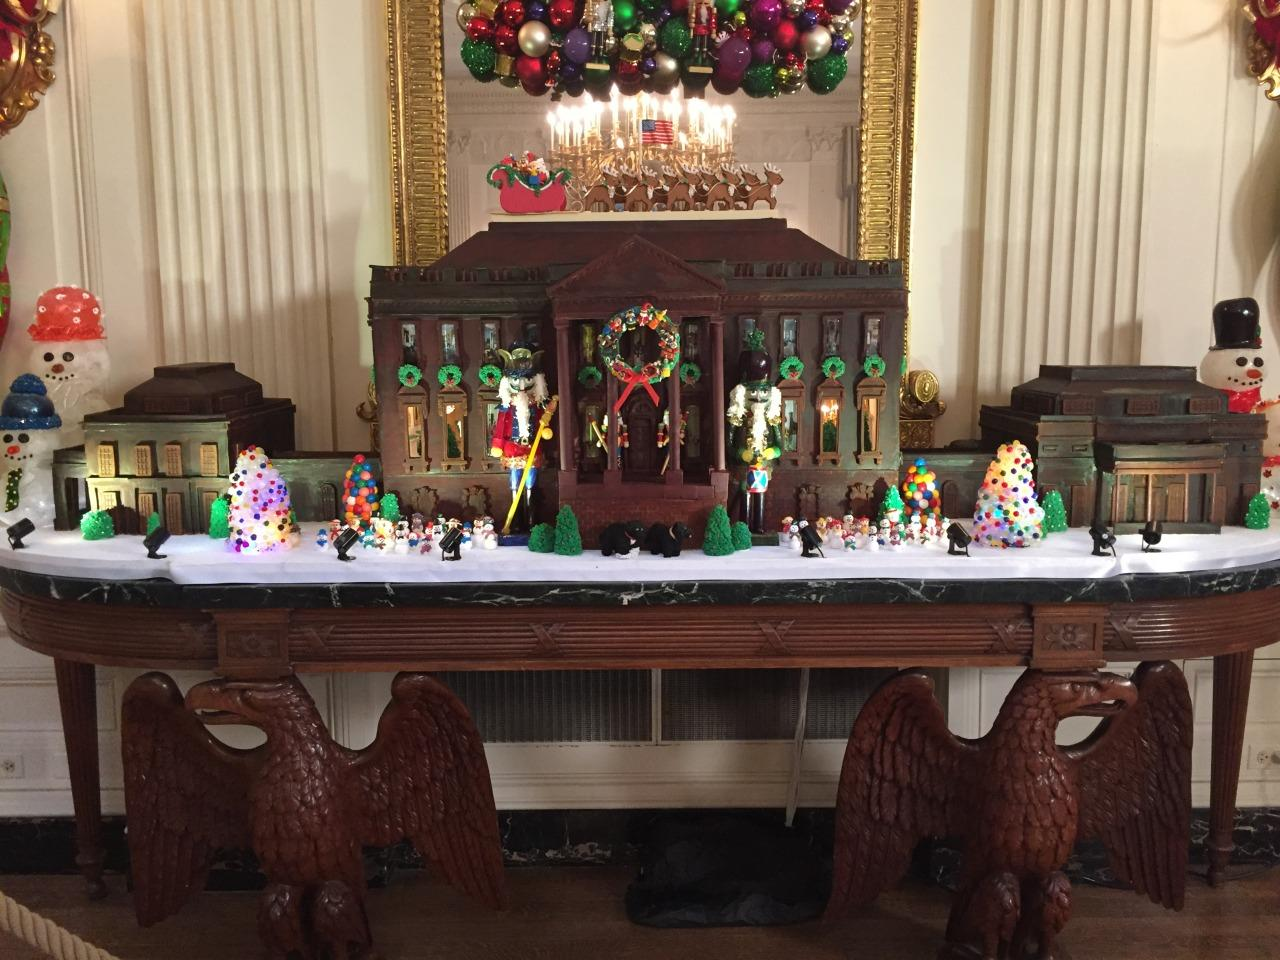 <p>This year's gingerbread house, a tradition started in the Nixon administration, weighs over 500 pounds and is dipped in dark chocolate. For the first time ever, the house features both the east and west wings of the White House. <i>(Photo: Cassie Carothers)</i></p>